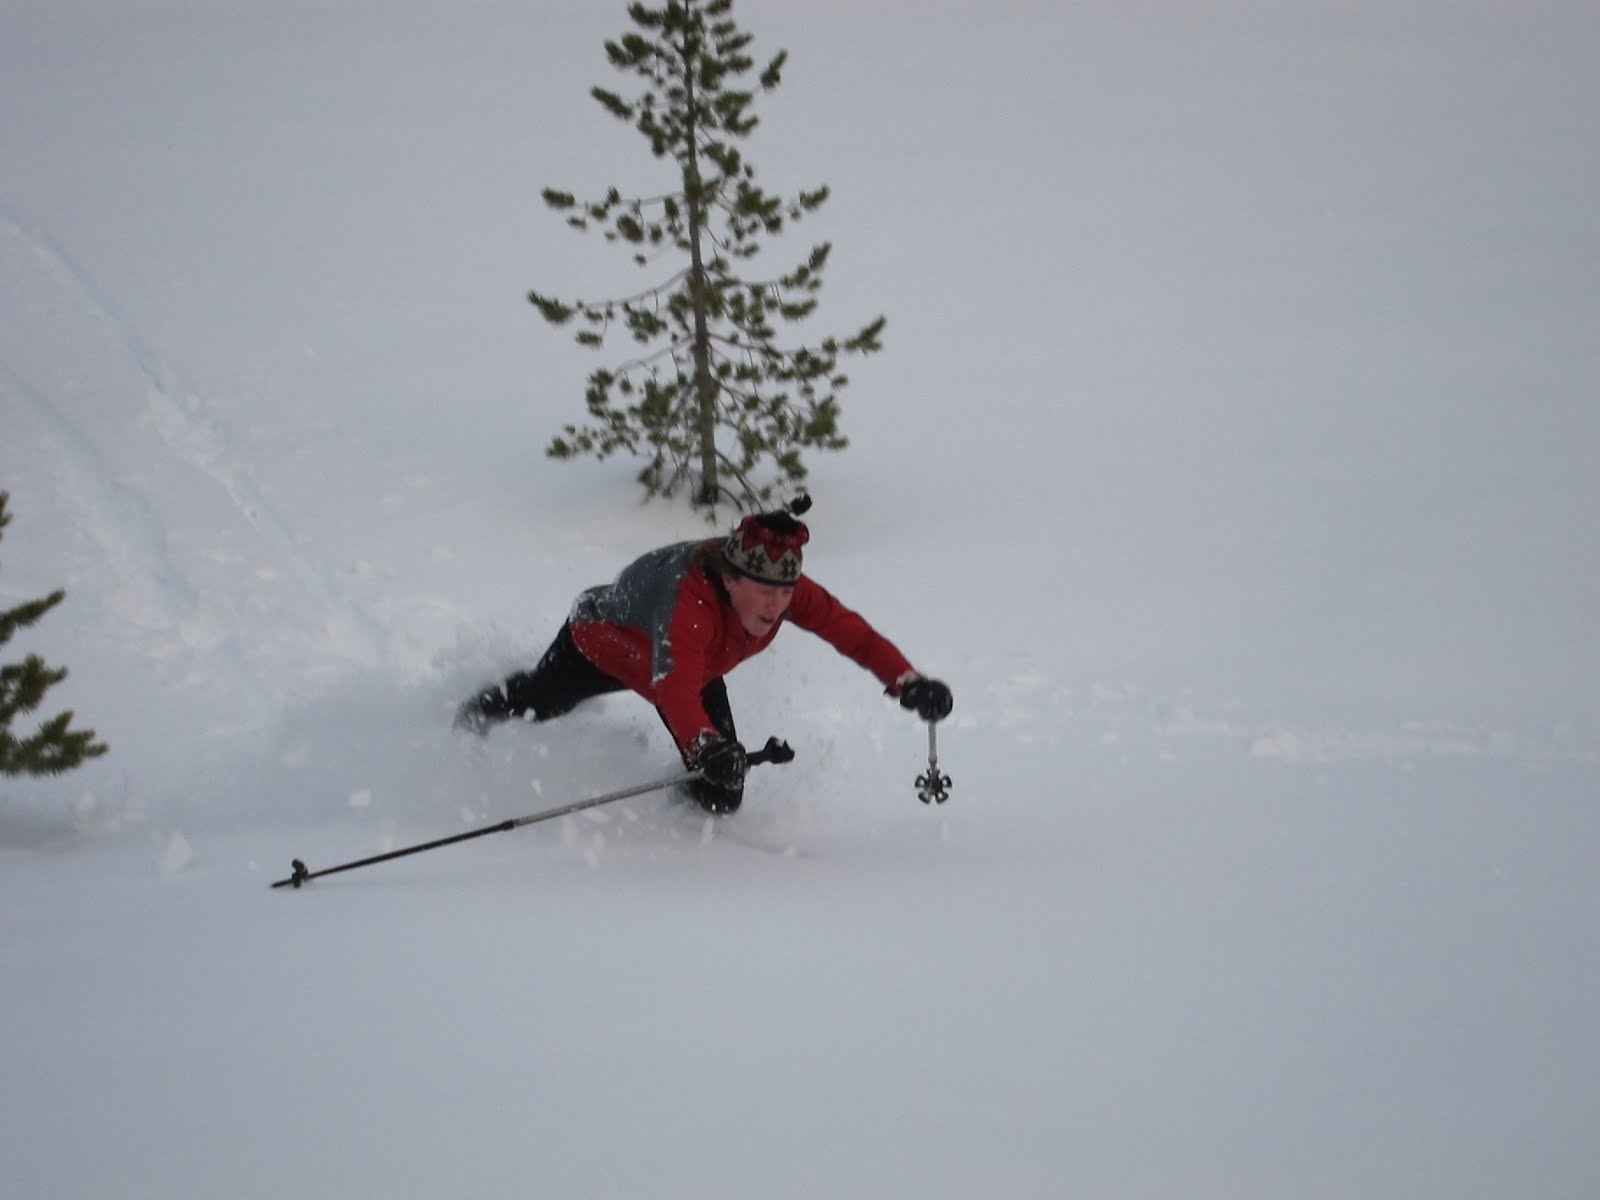 This Sunday January 9th is Free Ski Day on the North Valley Trails and Free ...